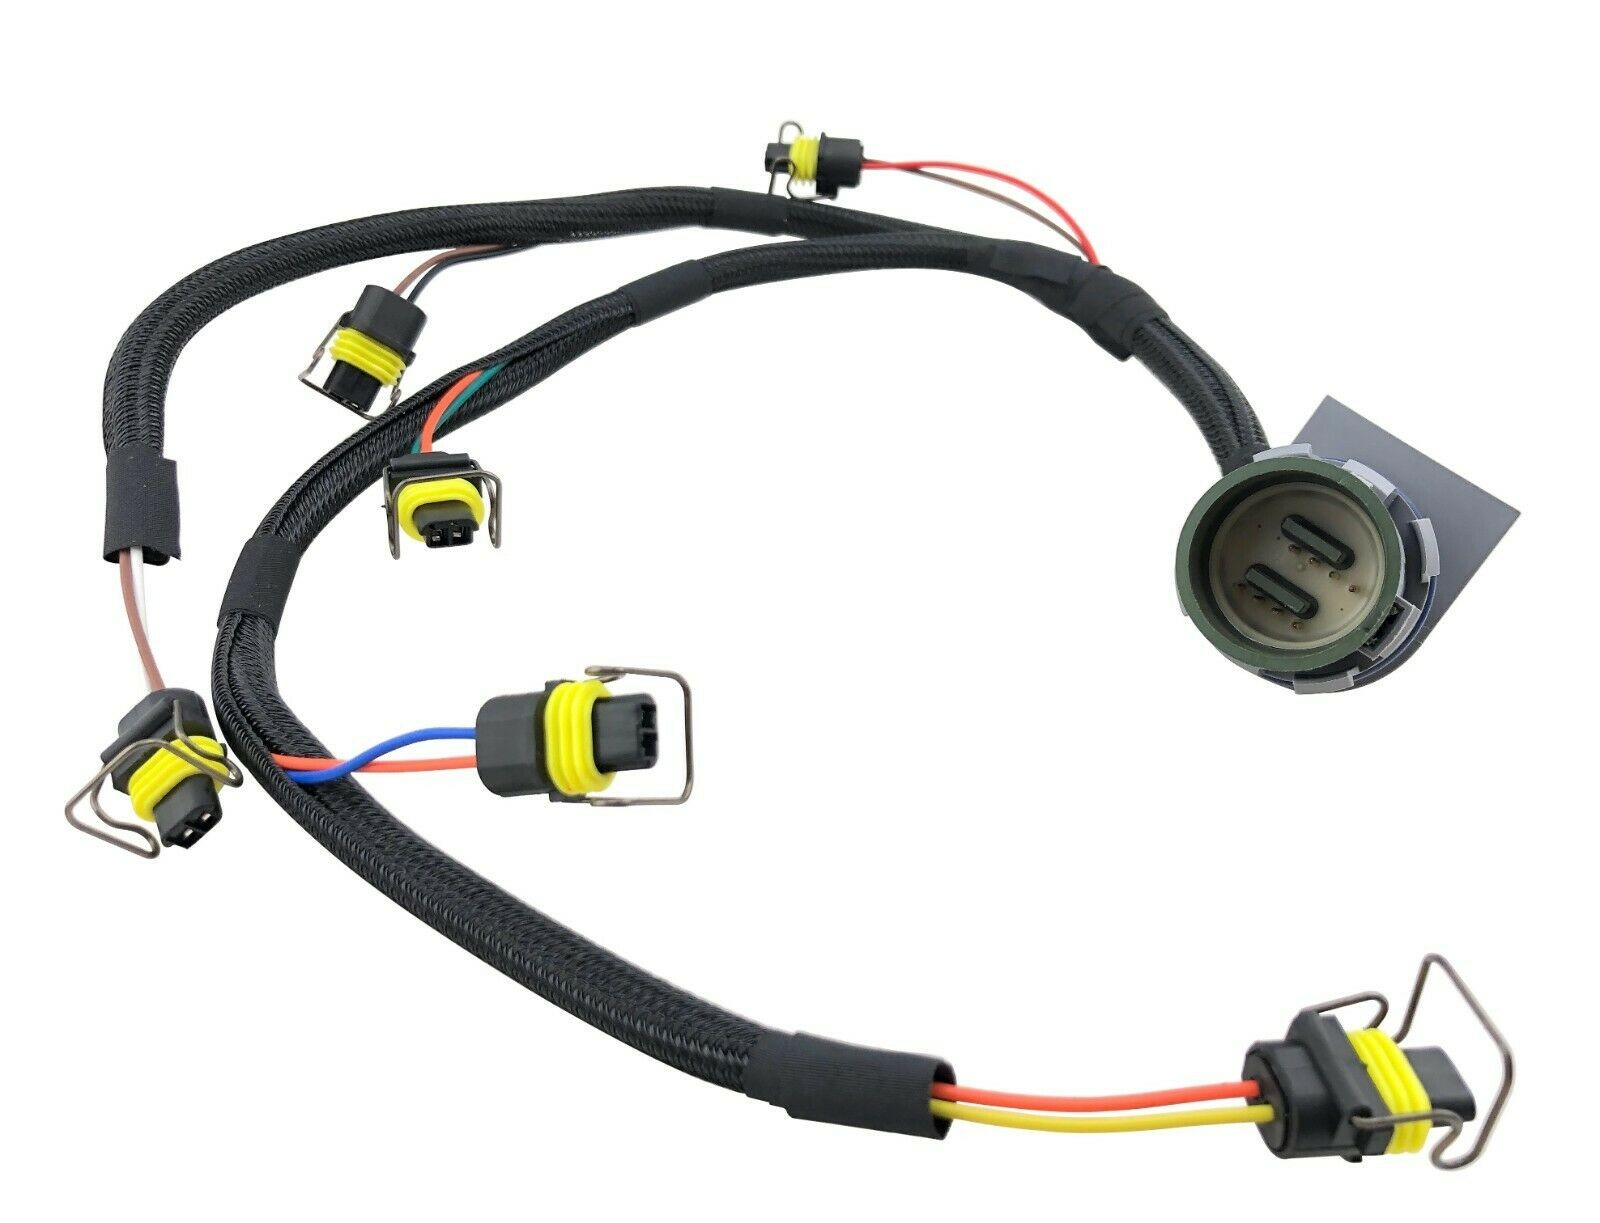 8 Pin Connector Fuel Injector Wiring Harness for Perkins 1206 Diesel 6 Cylinder